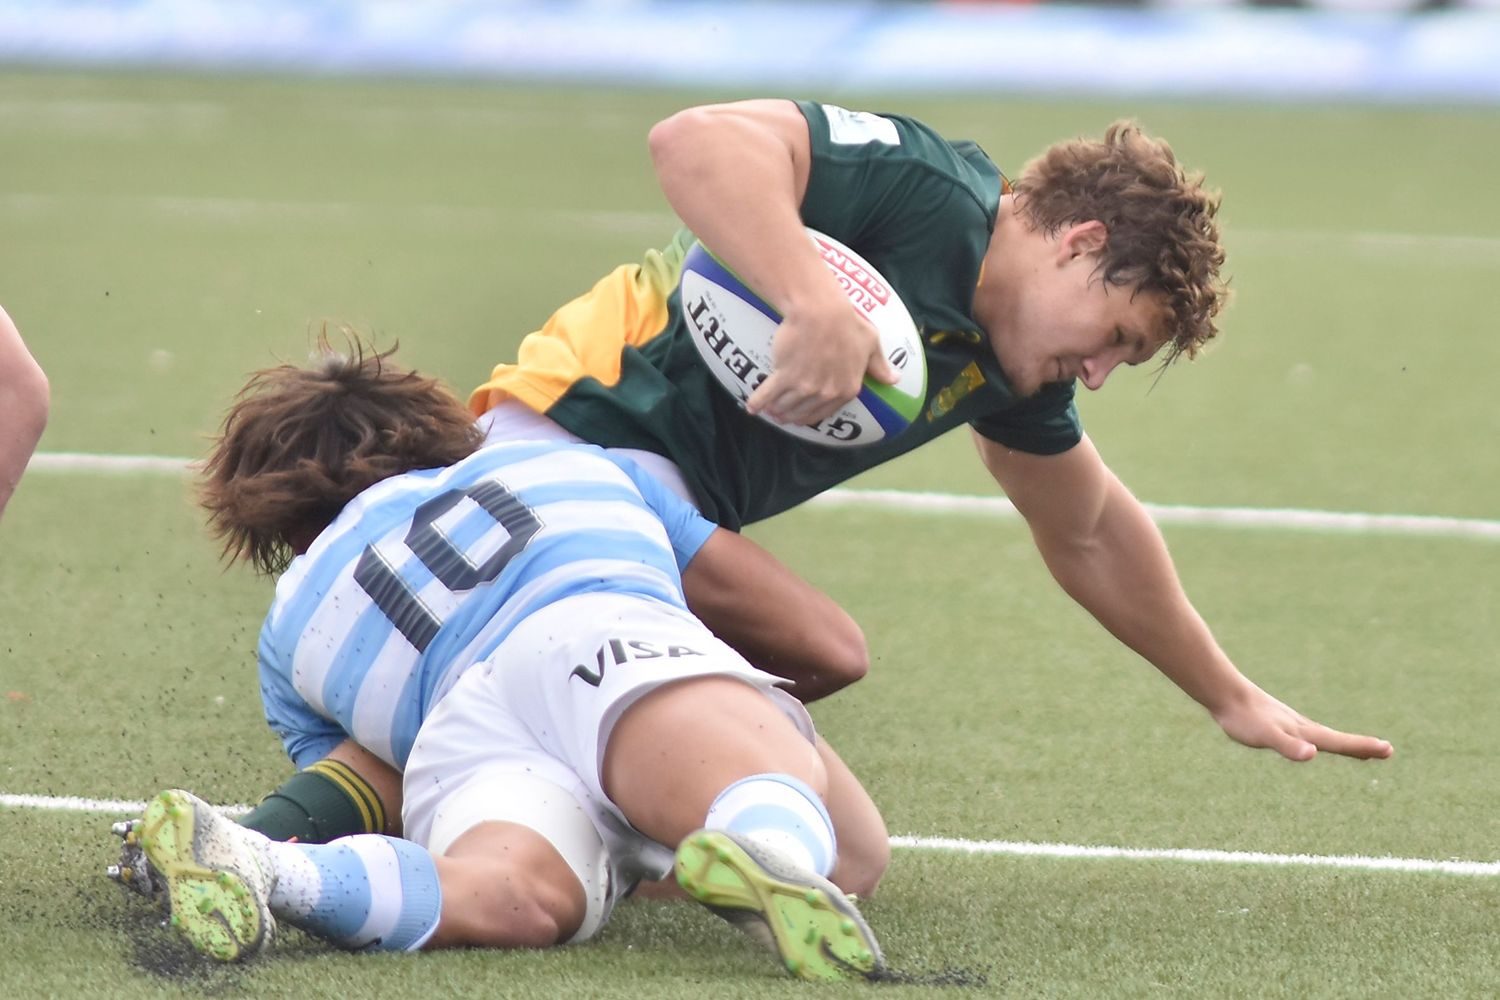 World Rugby U20 Championship 2019: Argentina v South Africa